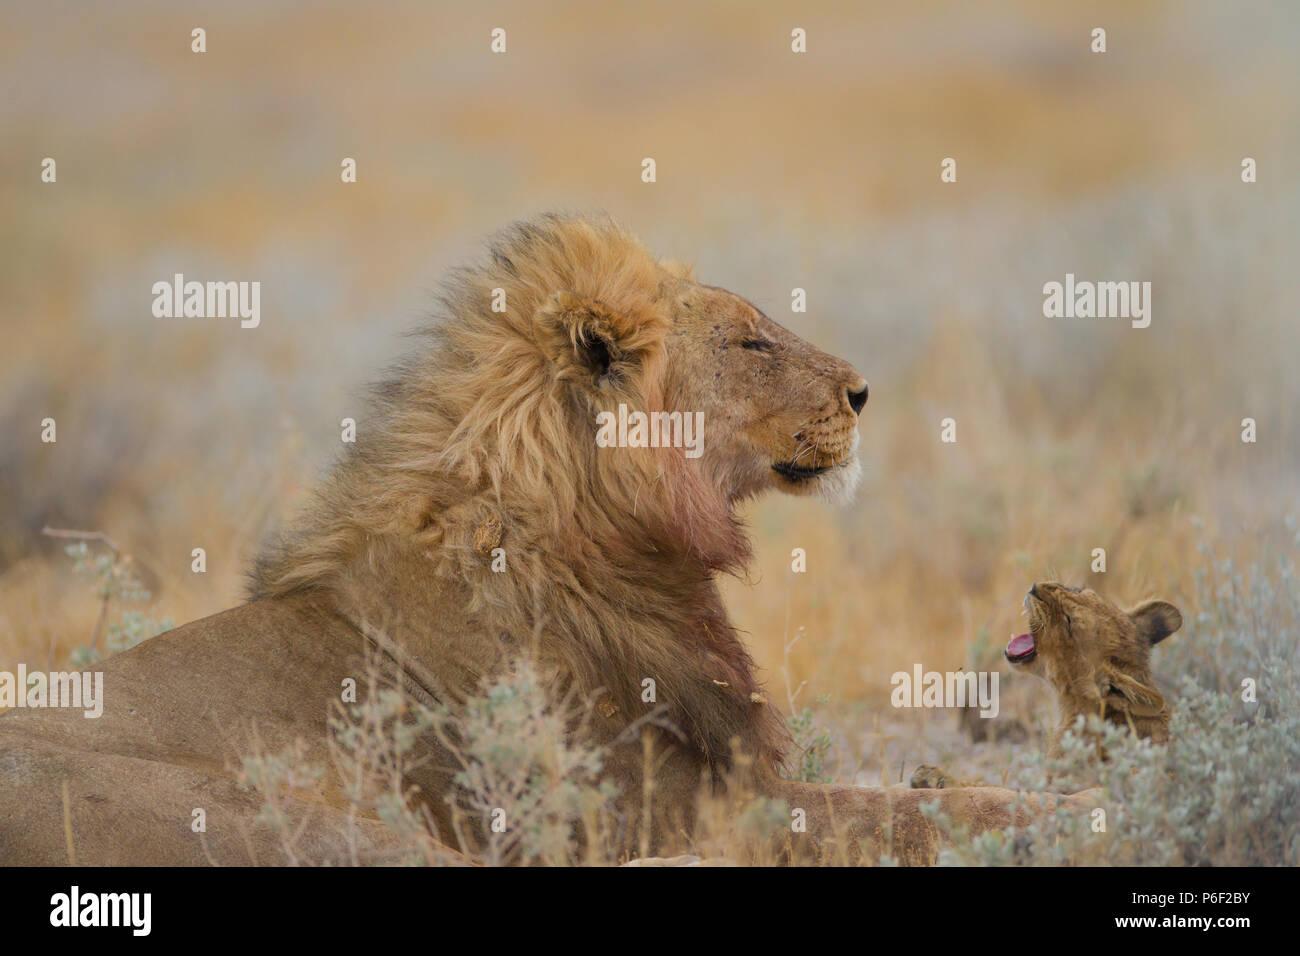 Male lion with his offspring in wilderness - Stock Image